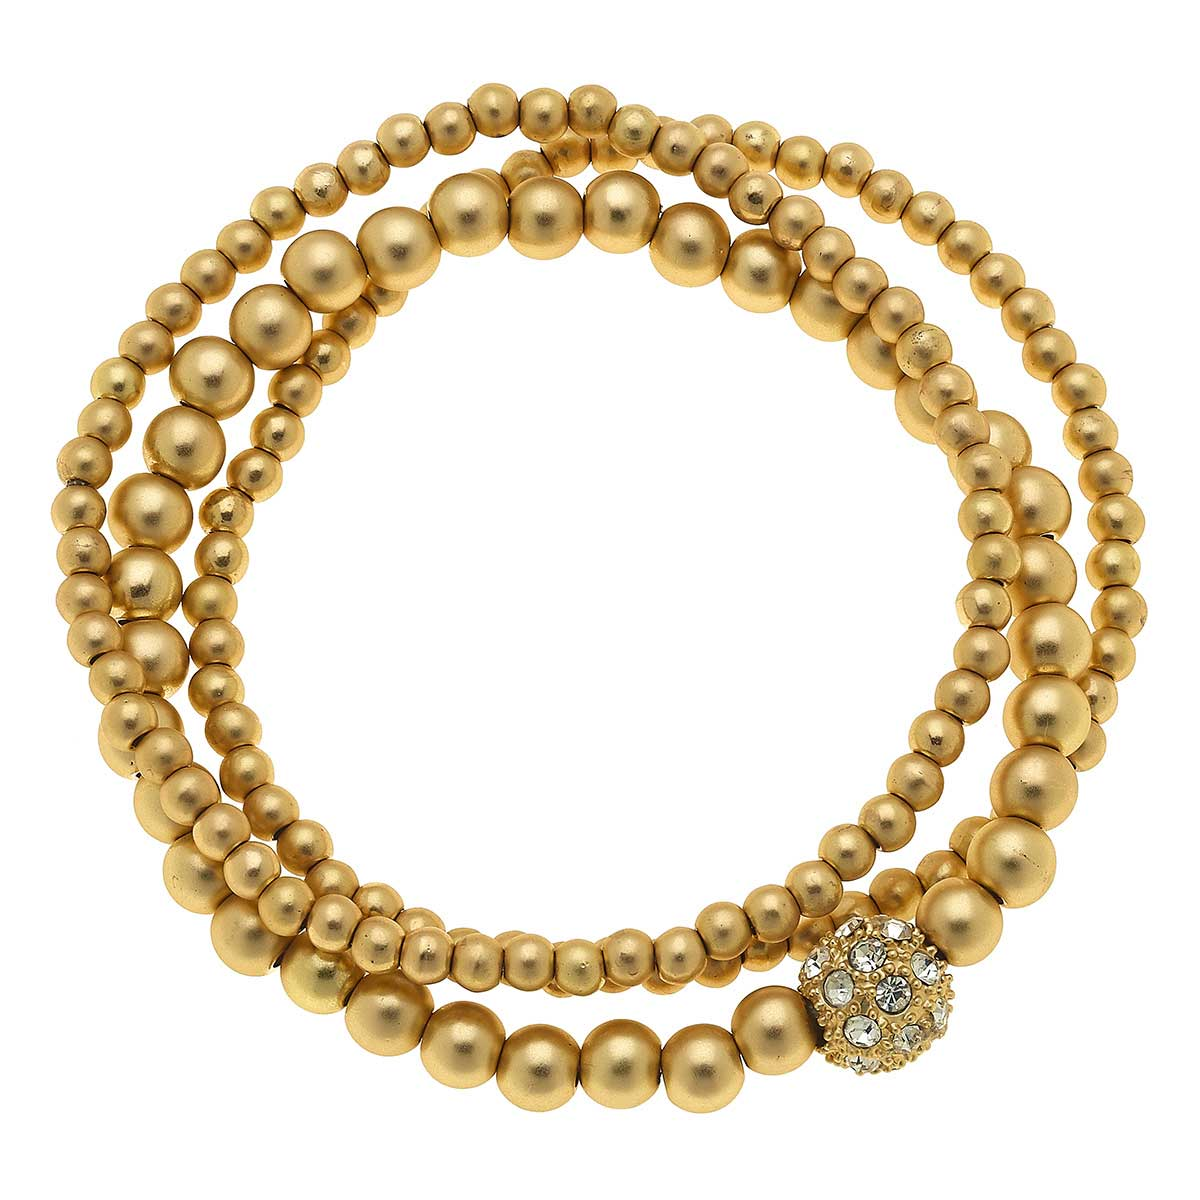 Juni Pavé Beaded Bracelets in Matte Gold (Set of 3)